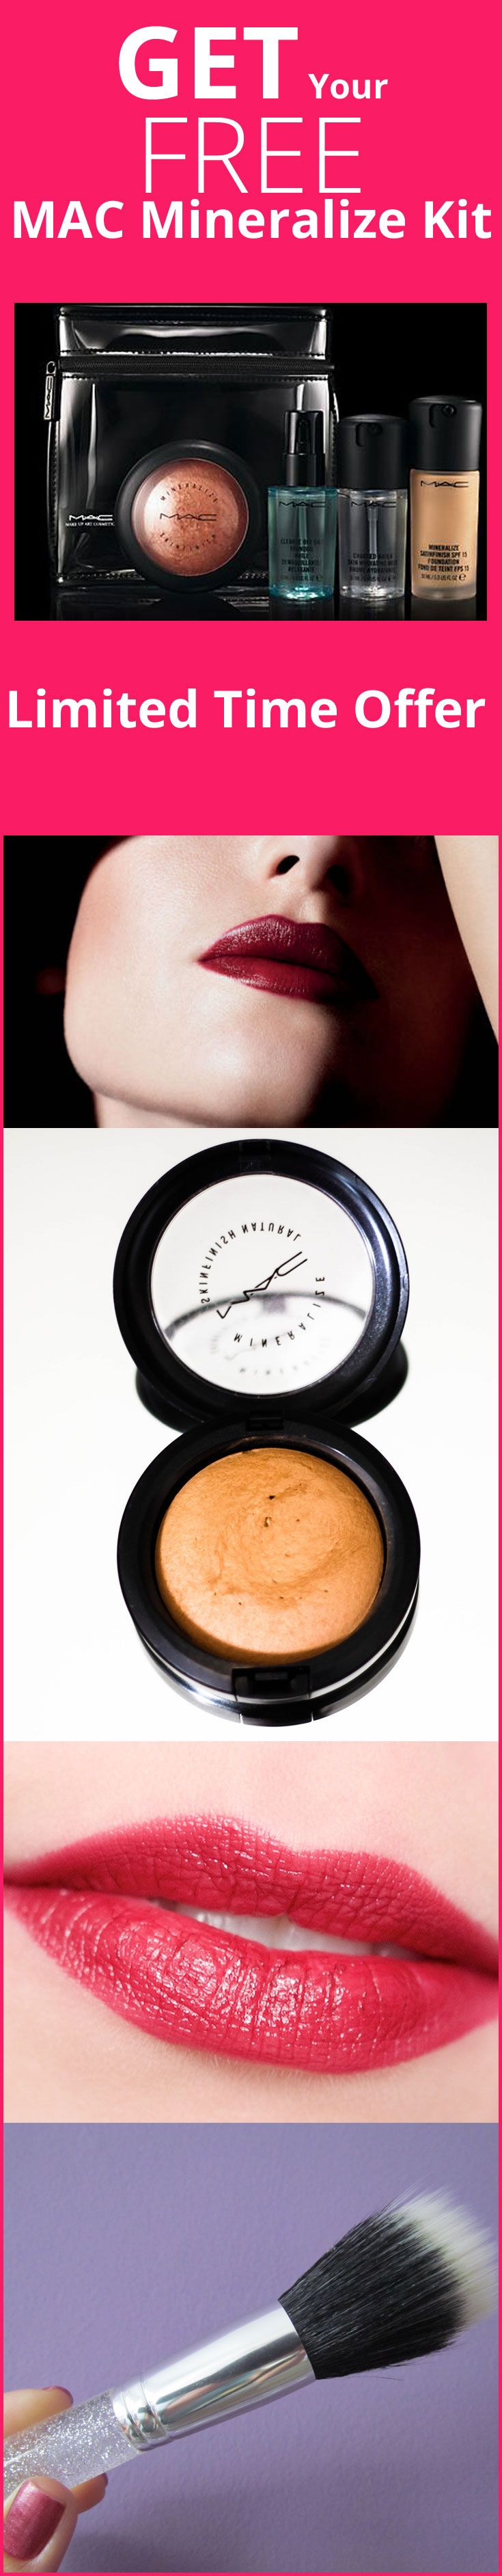 If you are looking for high quality mineral makeup, MAC Mineralize Makeup kit has probably no better alternative. But the best news is: You can GET your MAC Mineralize Kit absolutely FREE.